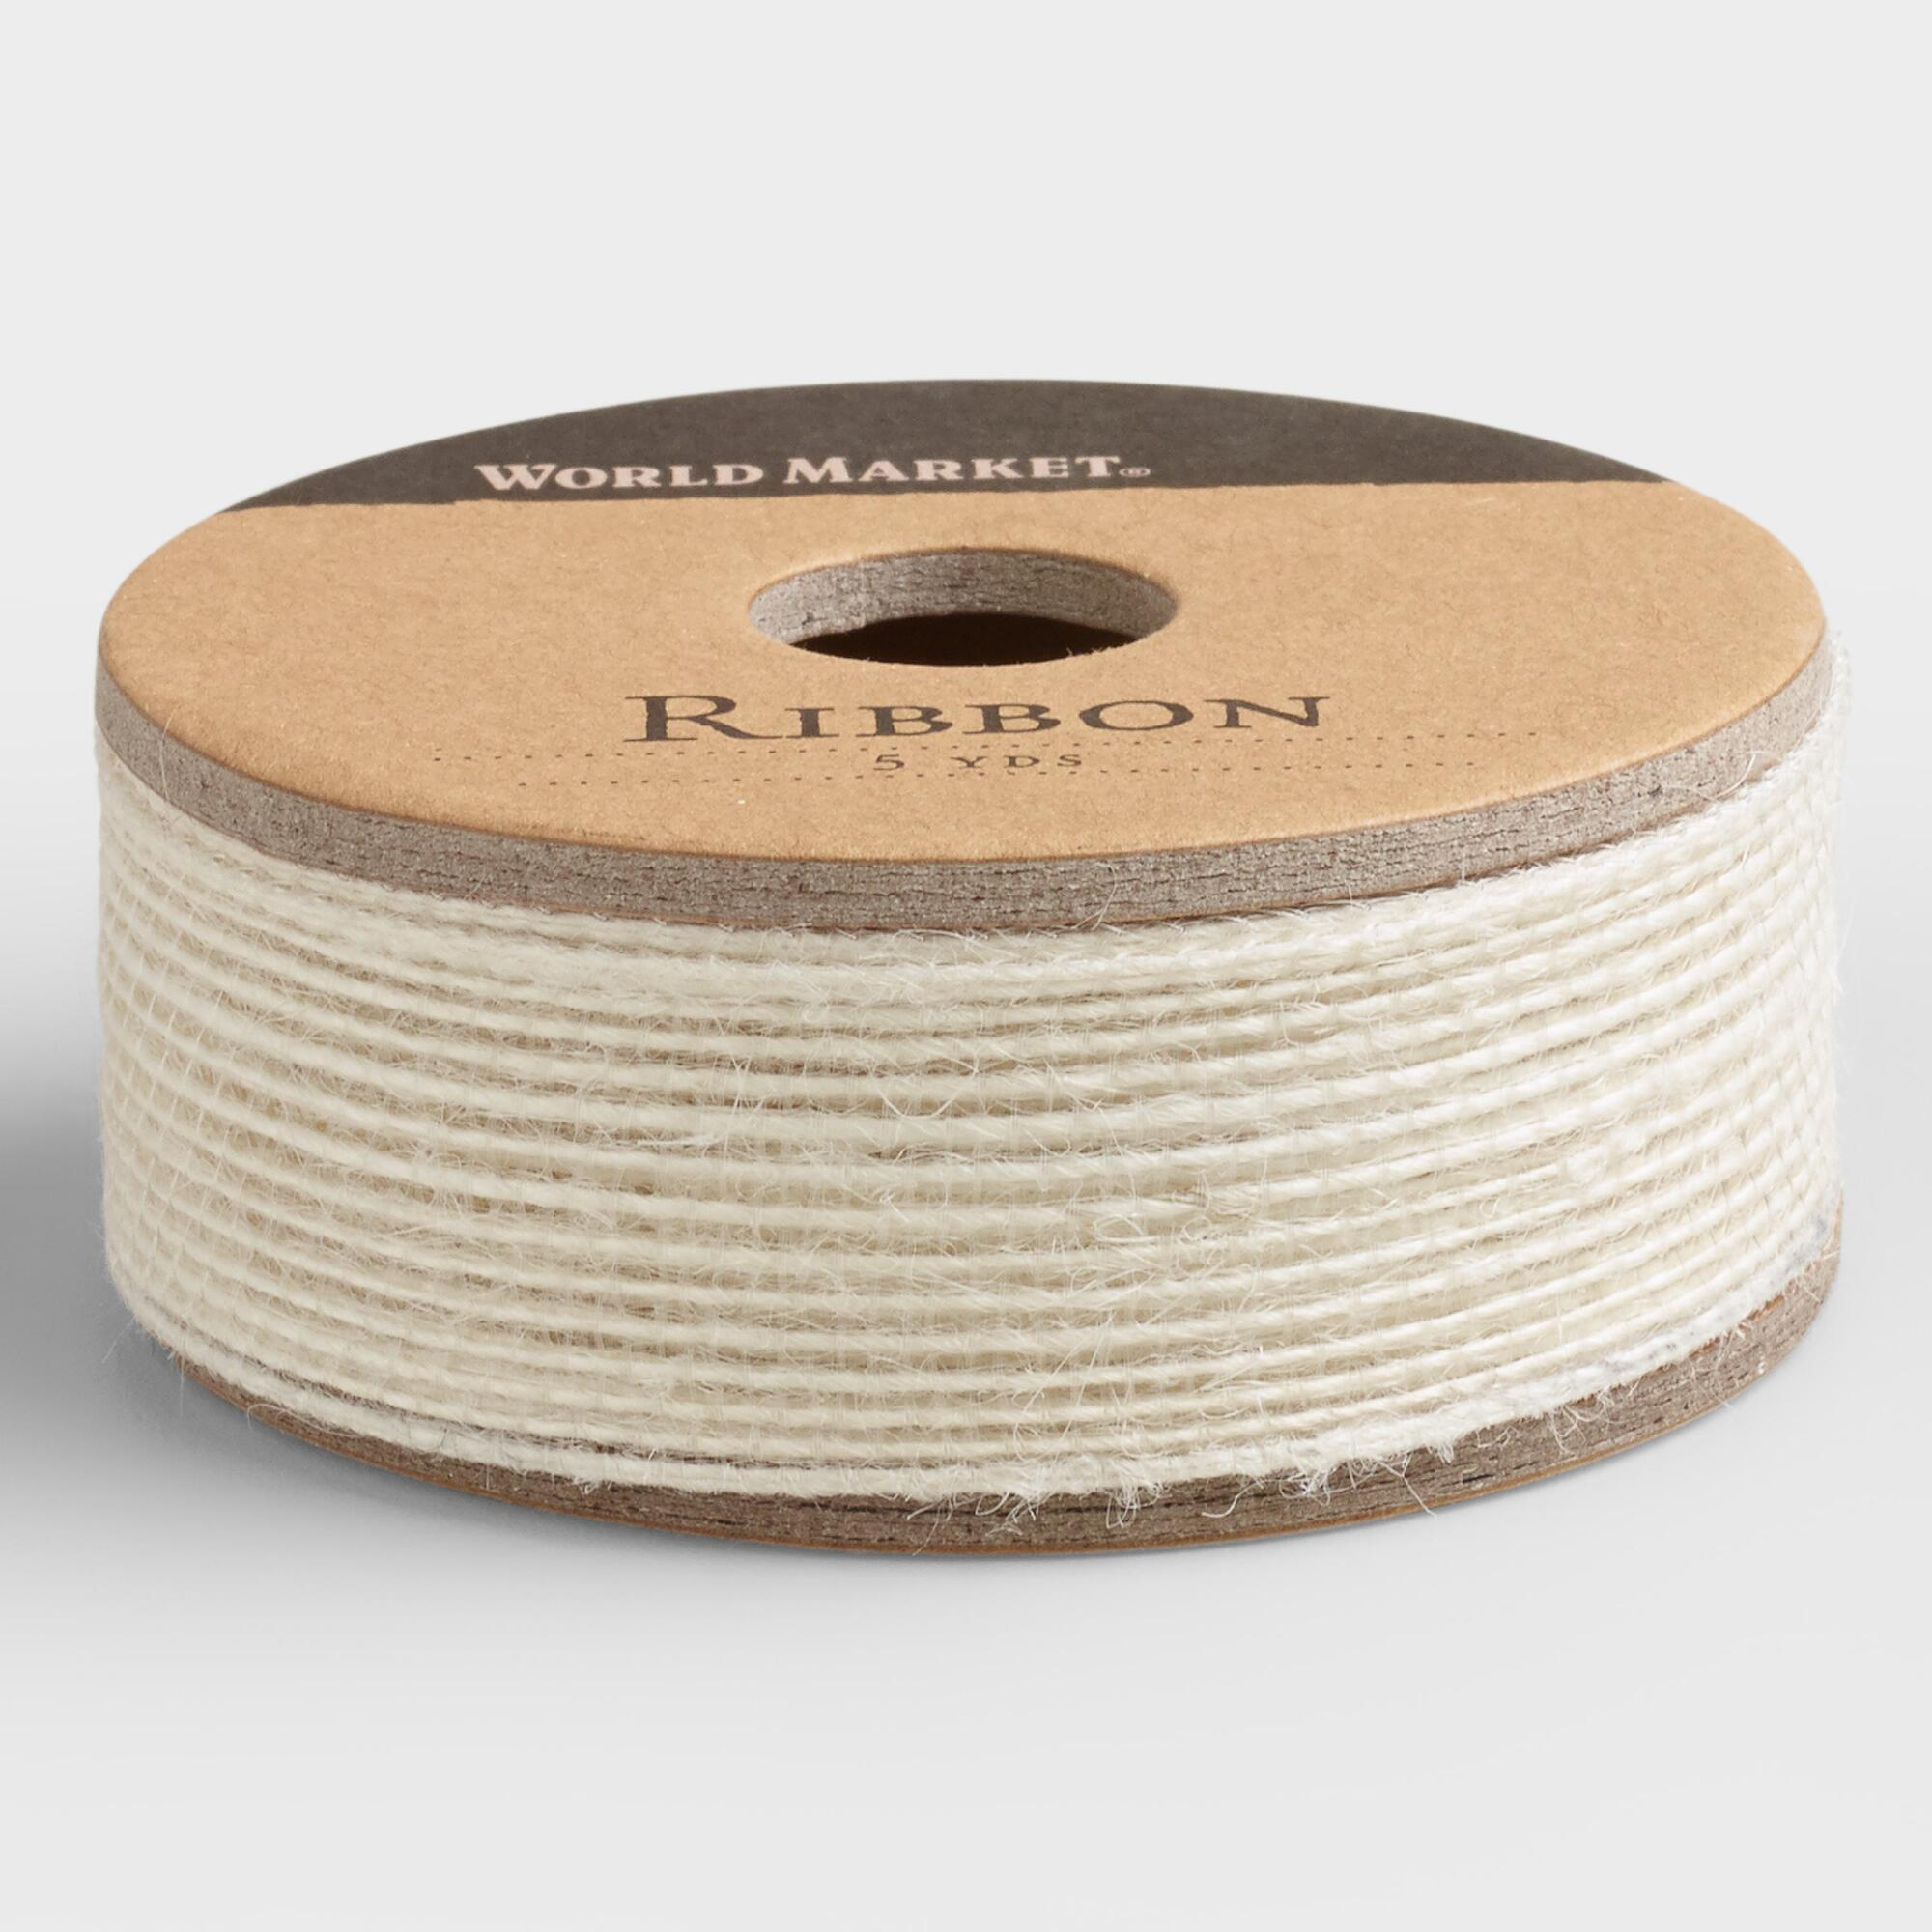 Cream Natural Woven Ribbon: White/Natural by World Market